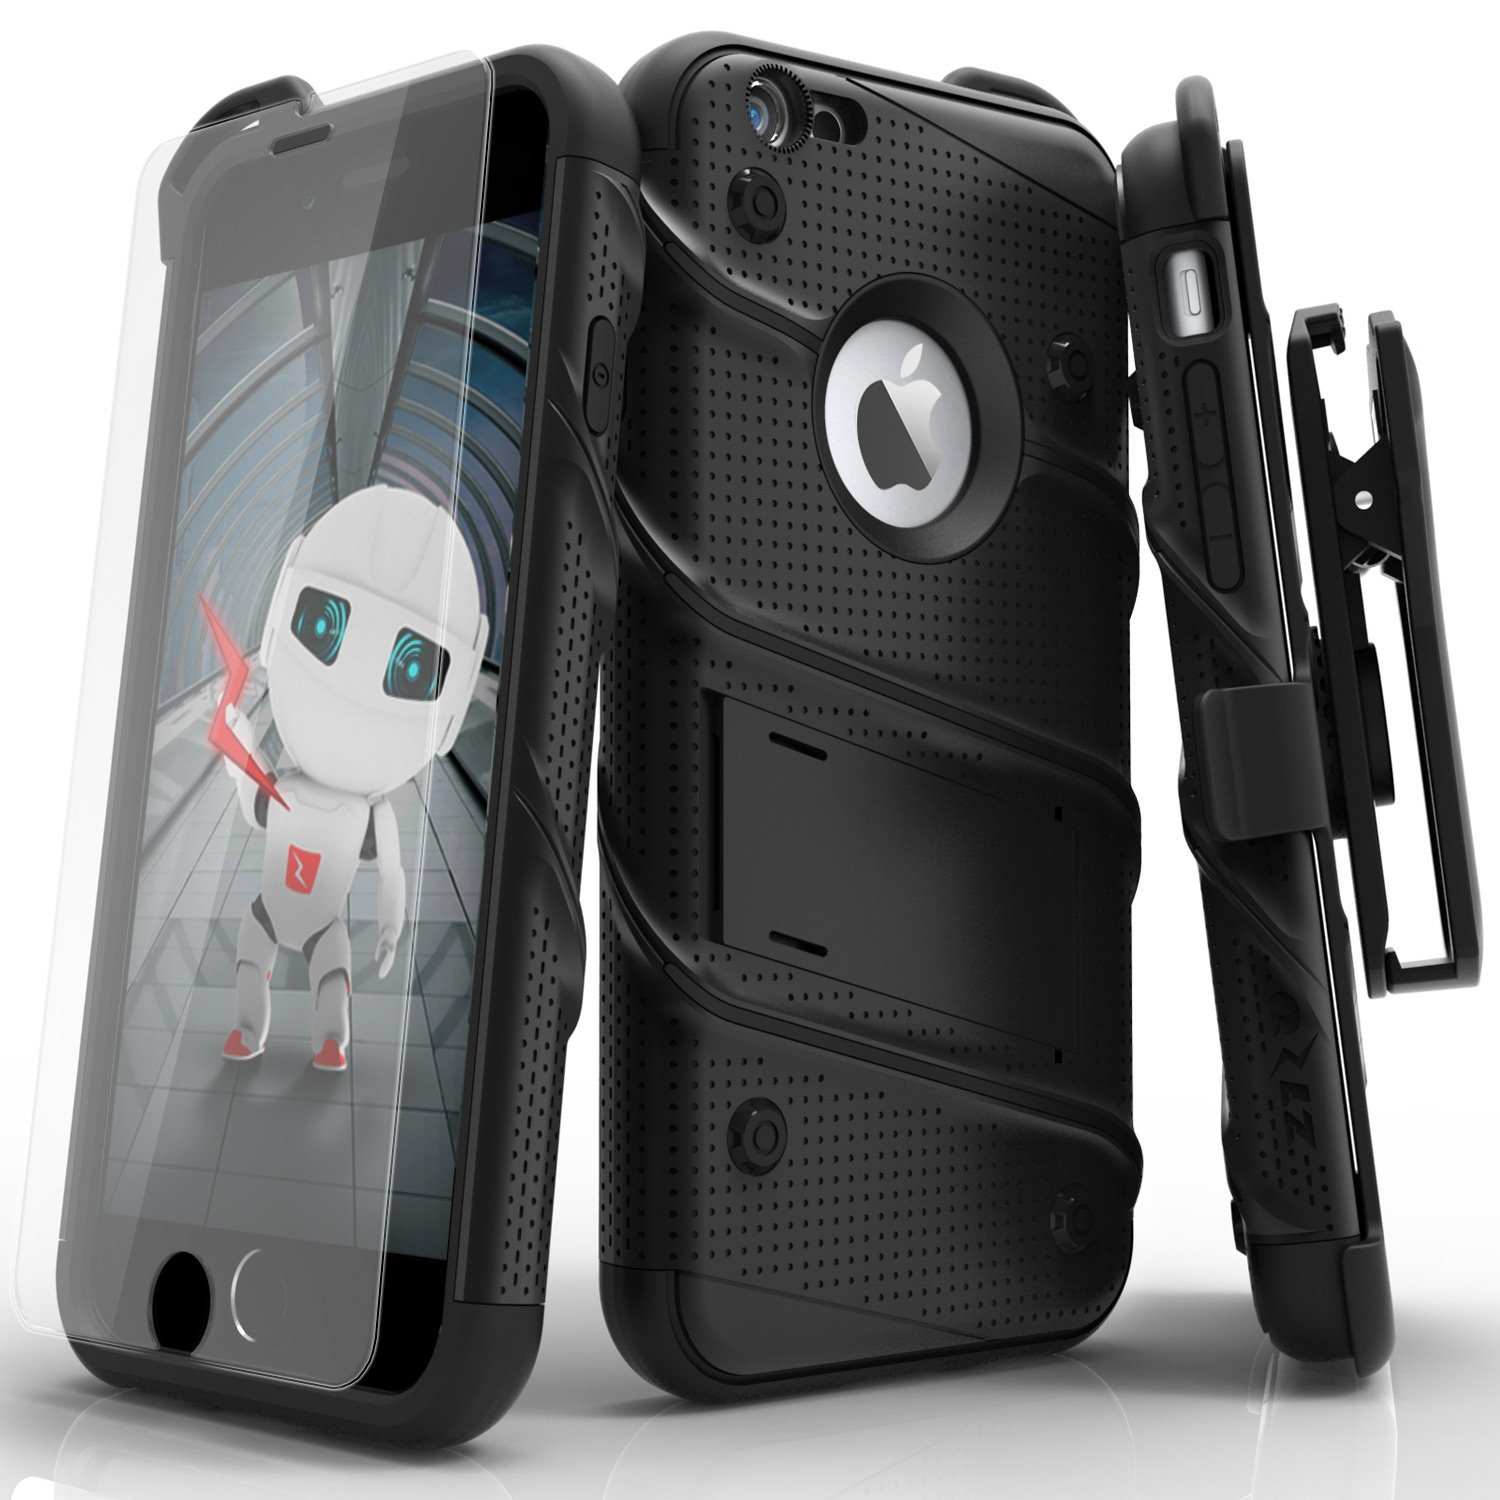 85f310a08b52 iPhone 6s Case, Zizo [Bolt Series] with [iPhone 6s Screen Protector]  Kickstand [Military Grade Drop Tested] Holster Belt Clip - iPhone 6 / 6s -  BIG nano ...